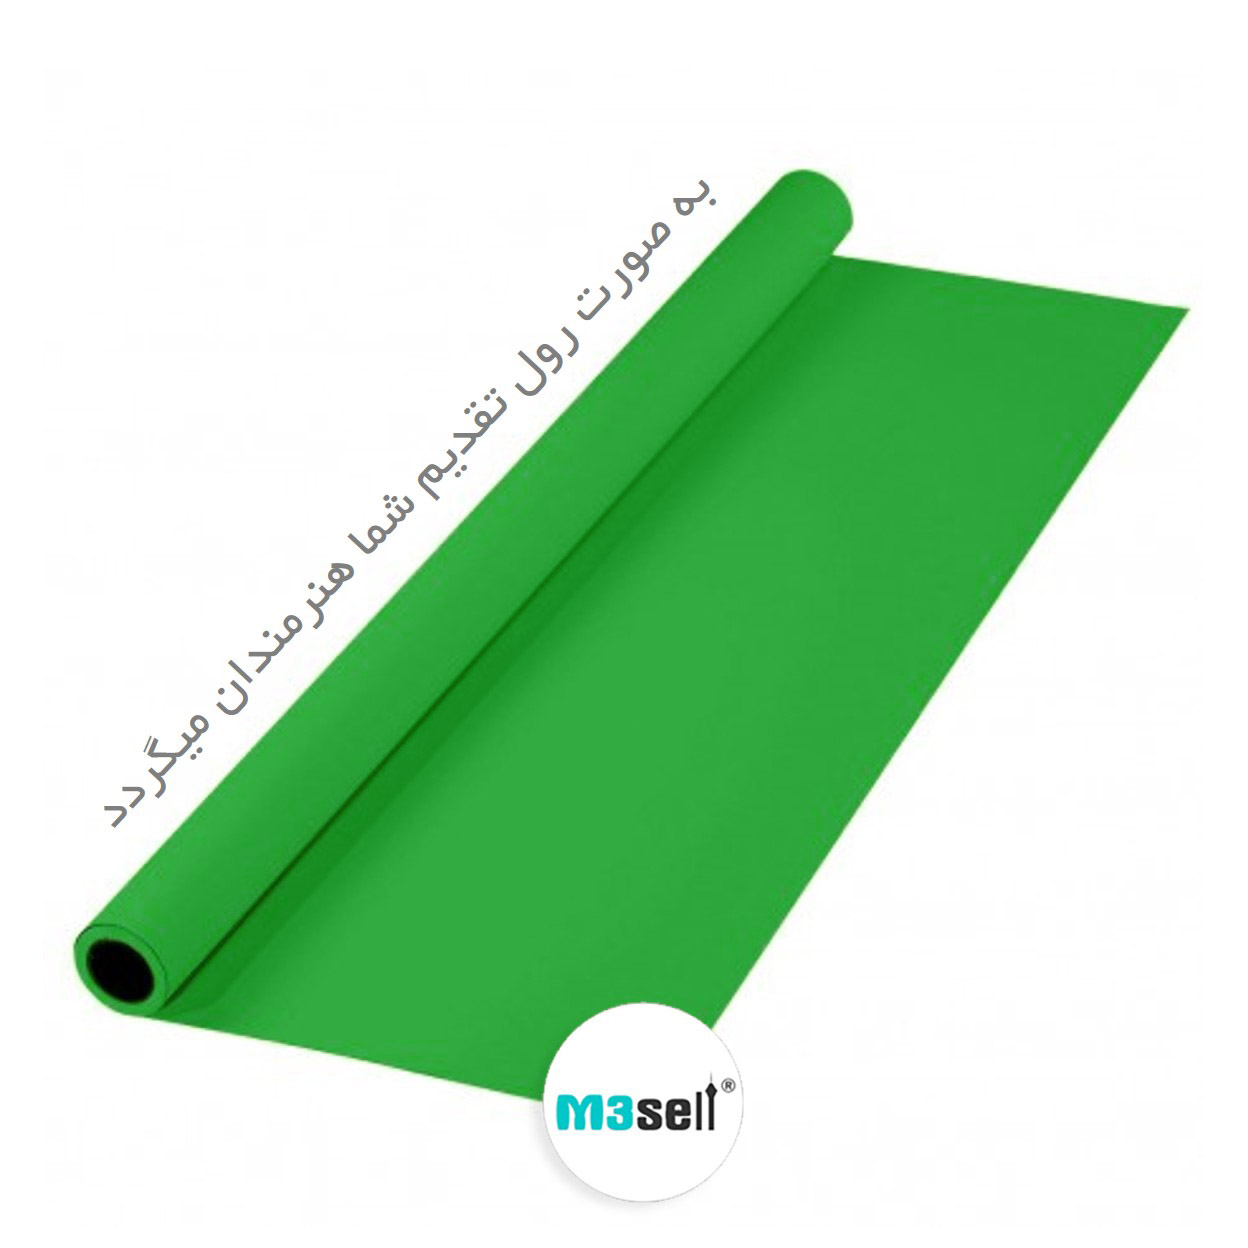 http://s6.picofile.com/file/8375397268/Muslin_Green_Screen.jpg